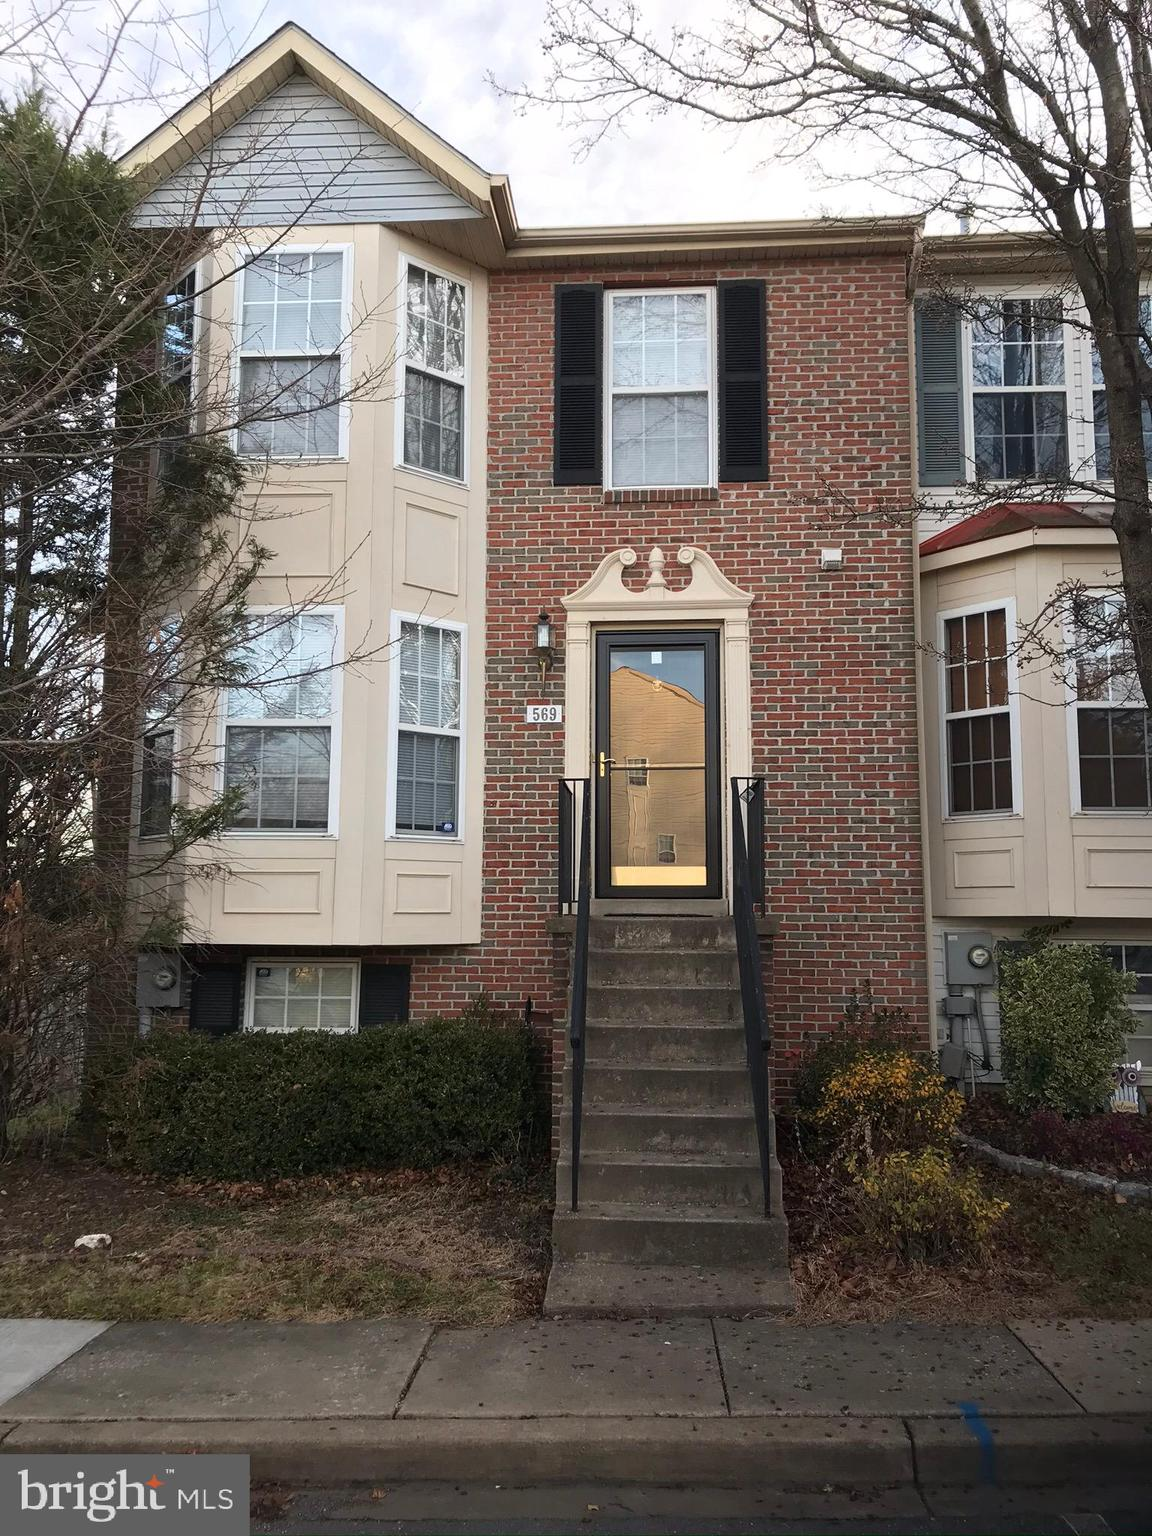 A beautiful end unit townhouse in excellent condition with brick front. A very large living room and